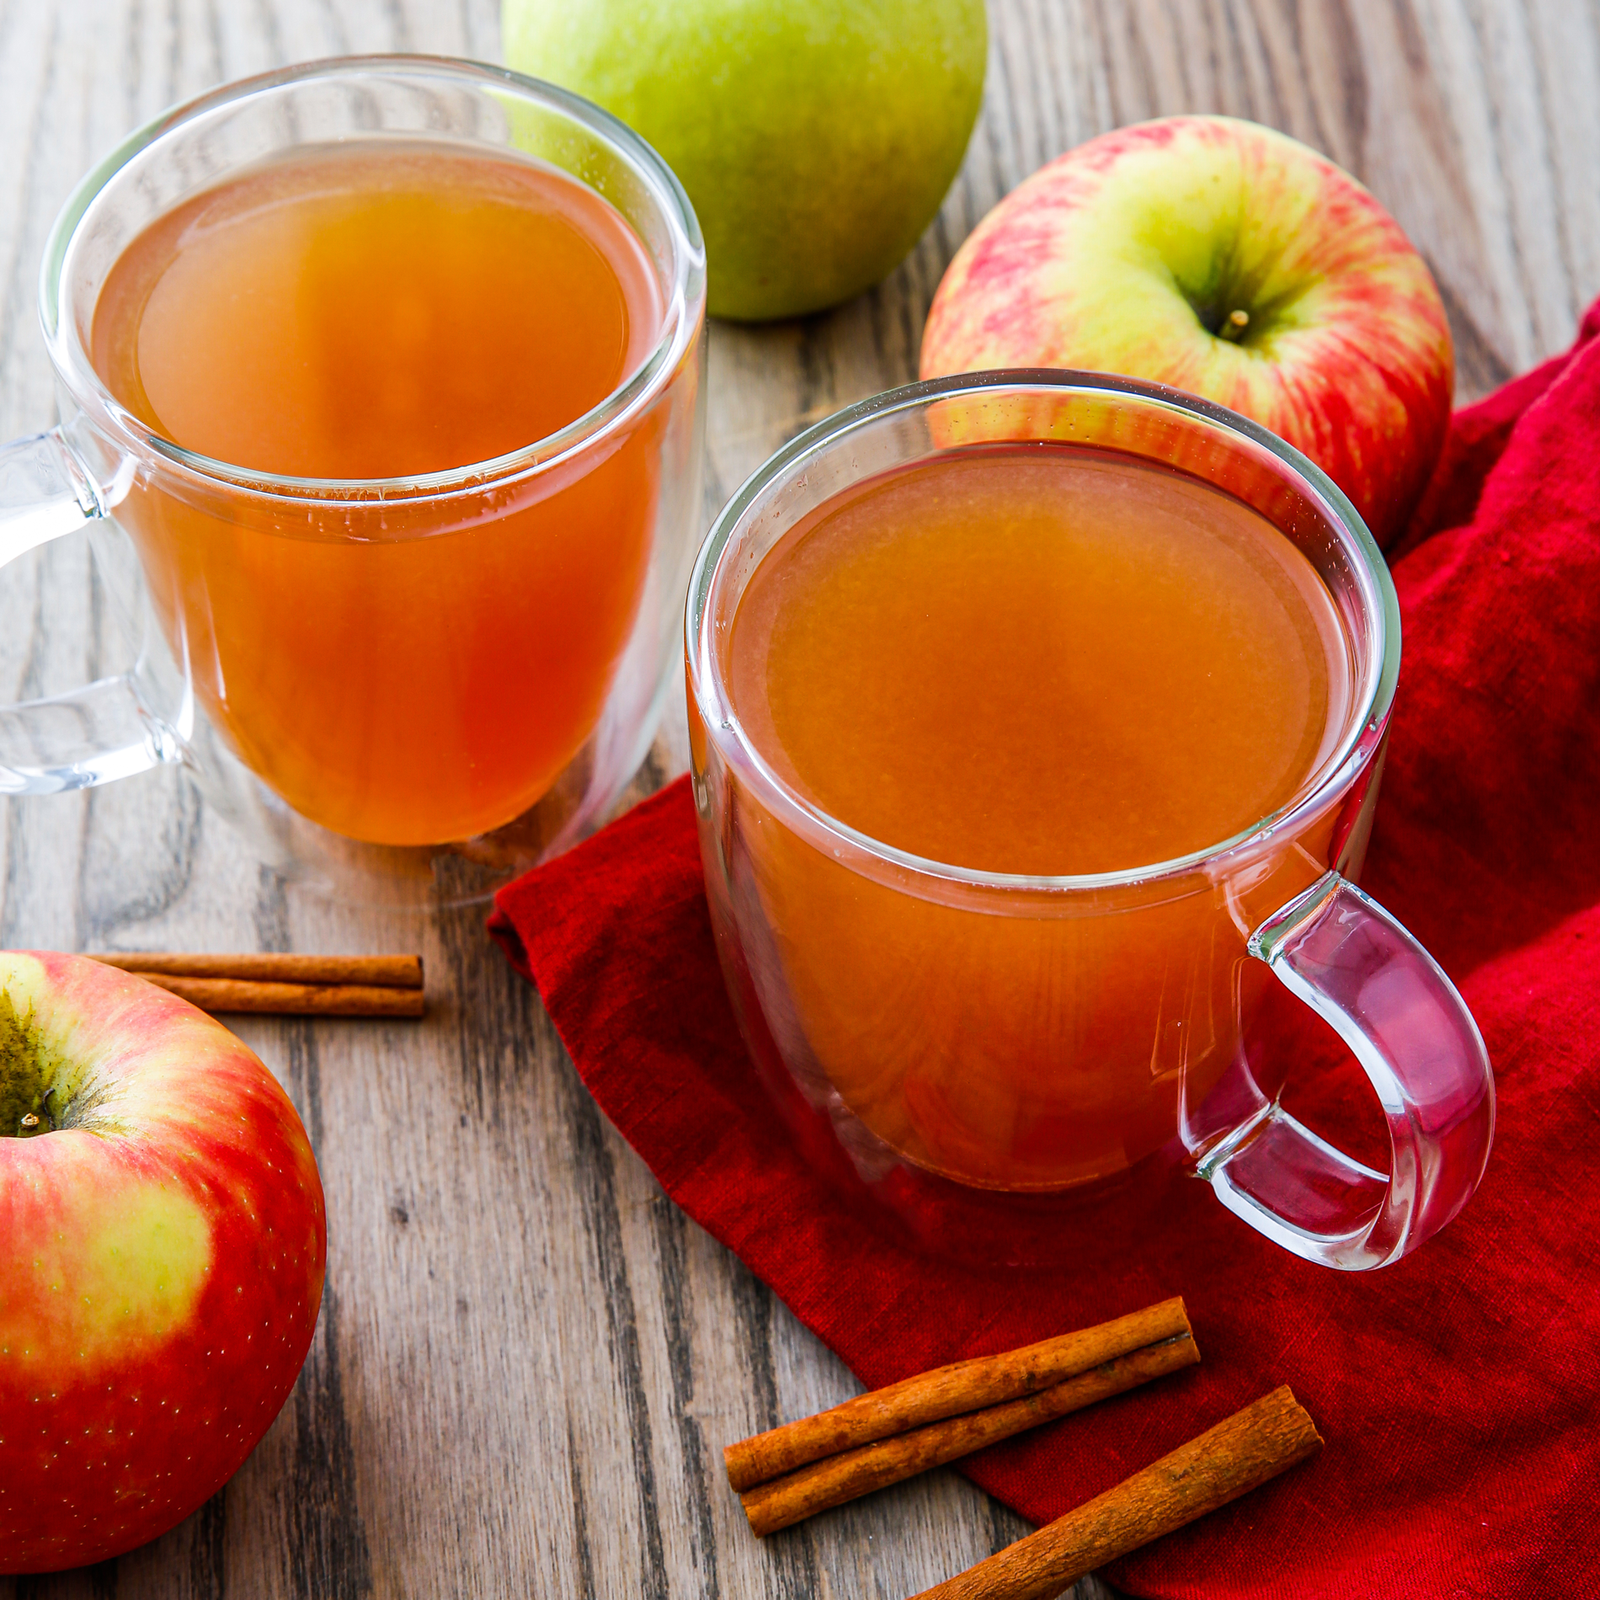 Nothing Says Fall Like Homemade Apple Cider Recipe Homemade Apple Cider Homemade Apple Apple Picking Recipe